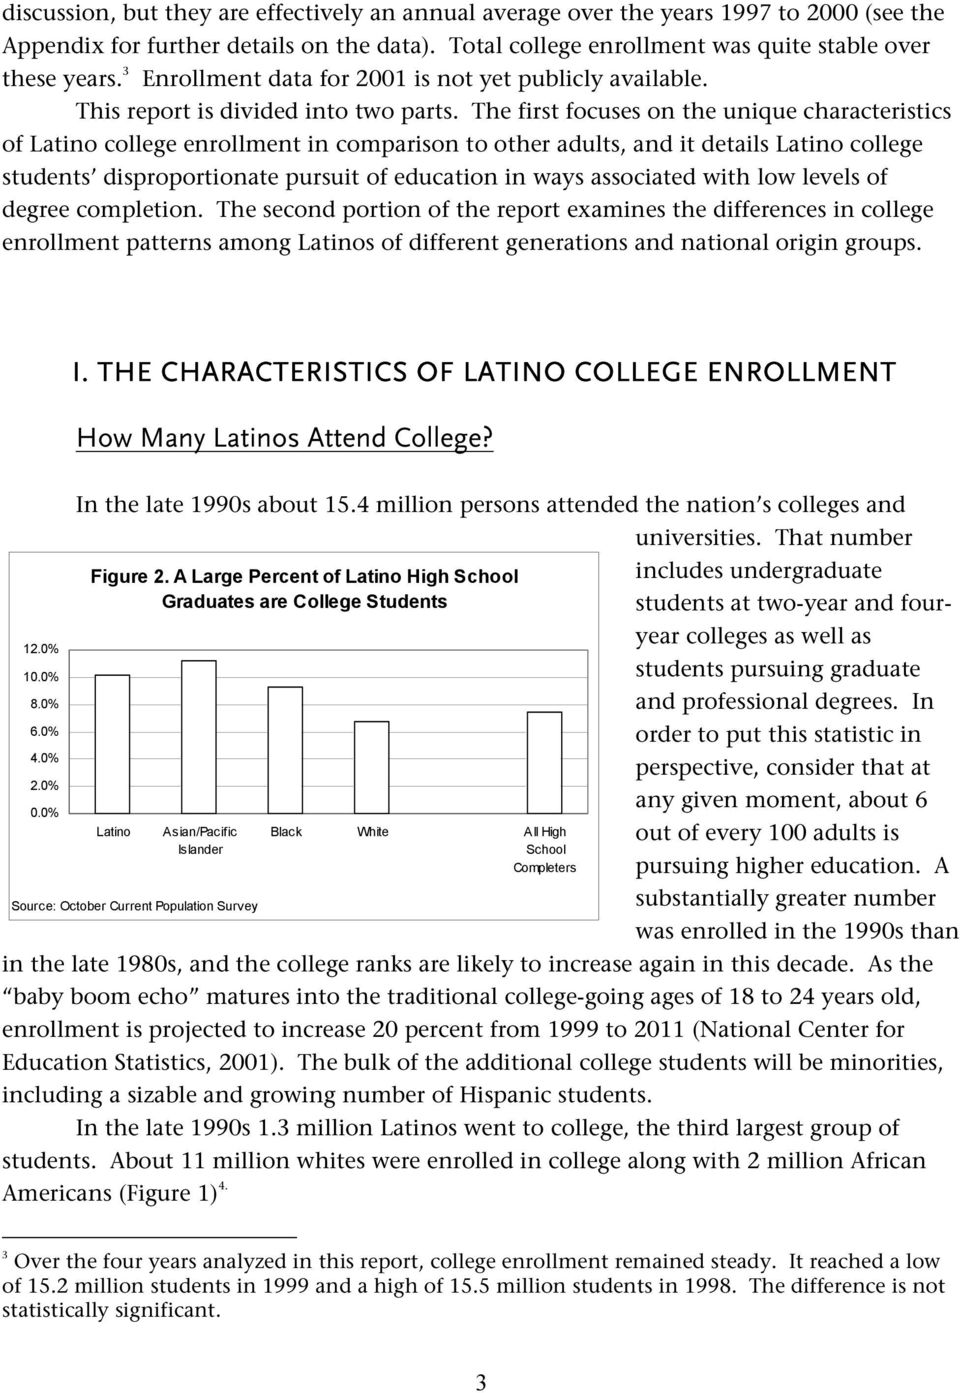 The first focuses on the unique characteristics of Latino college enrollment in comparison to other adults, and it details Latino college students disproportionate pursuit of education in ways